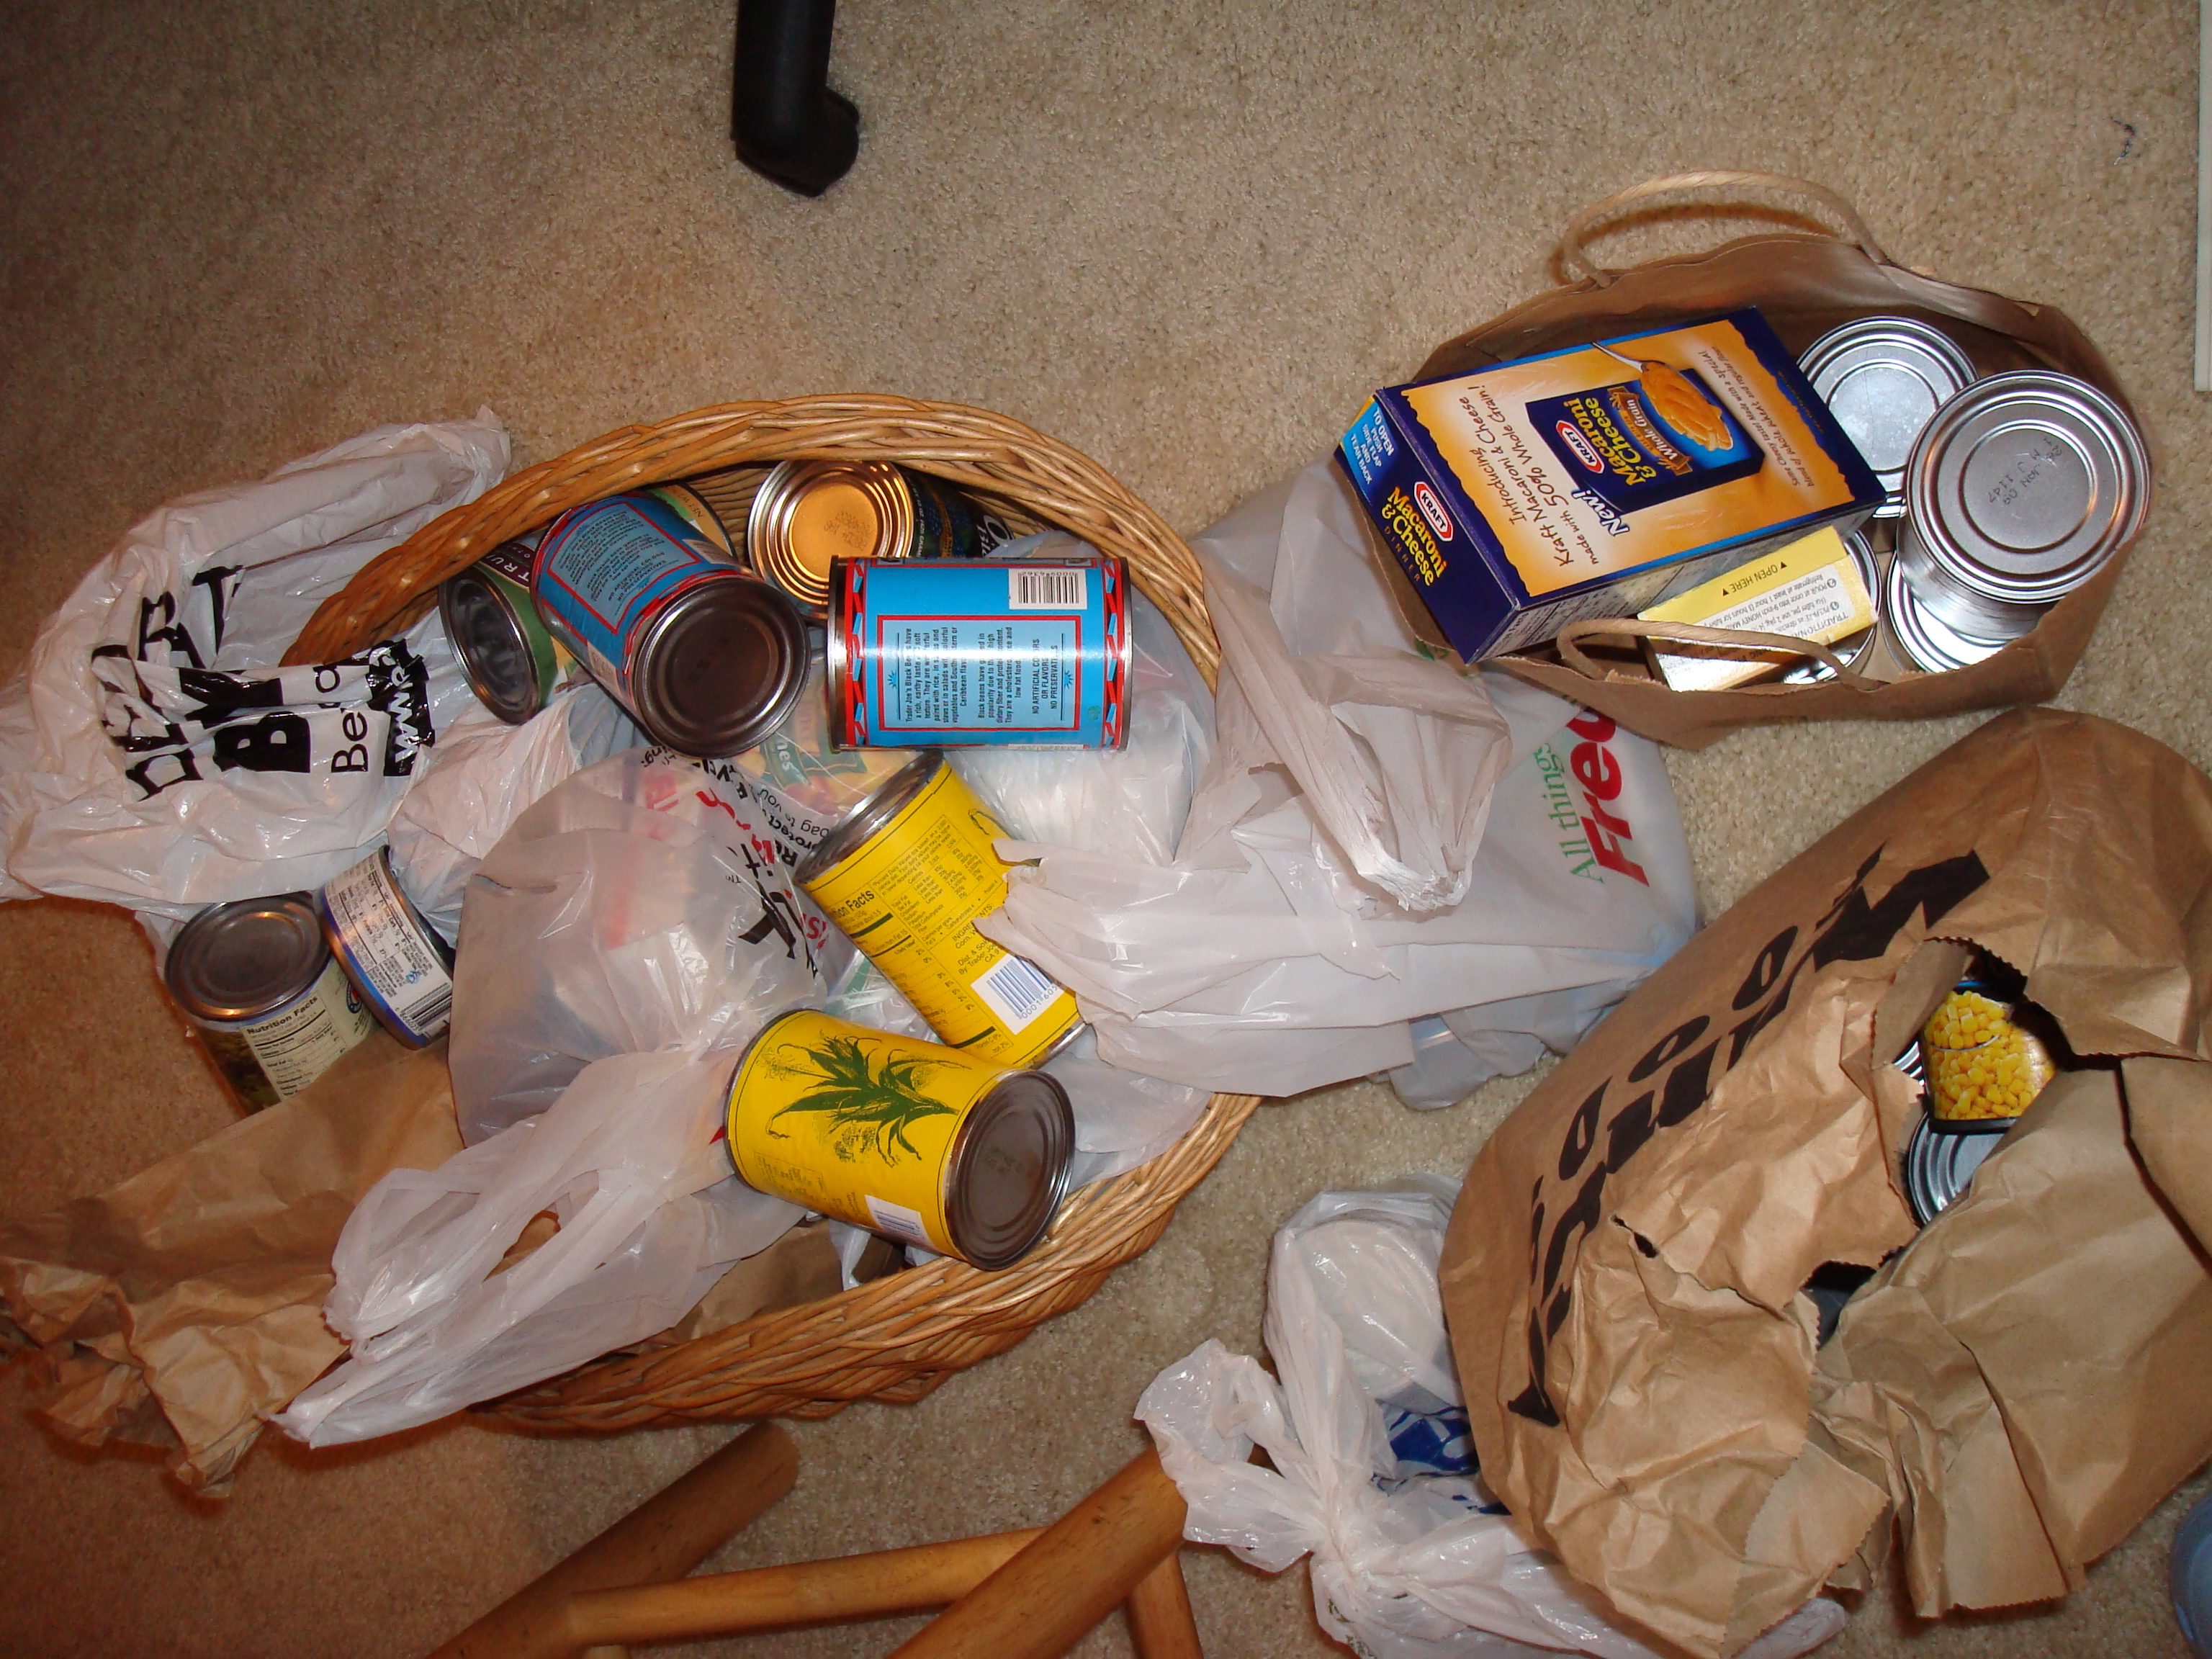 Over-flowing pile of canned goods collected for food bank.